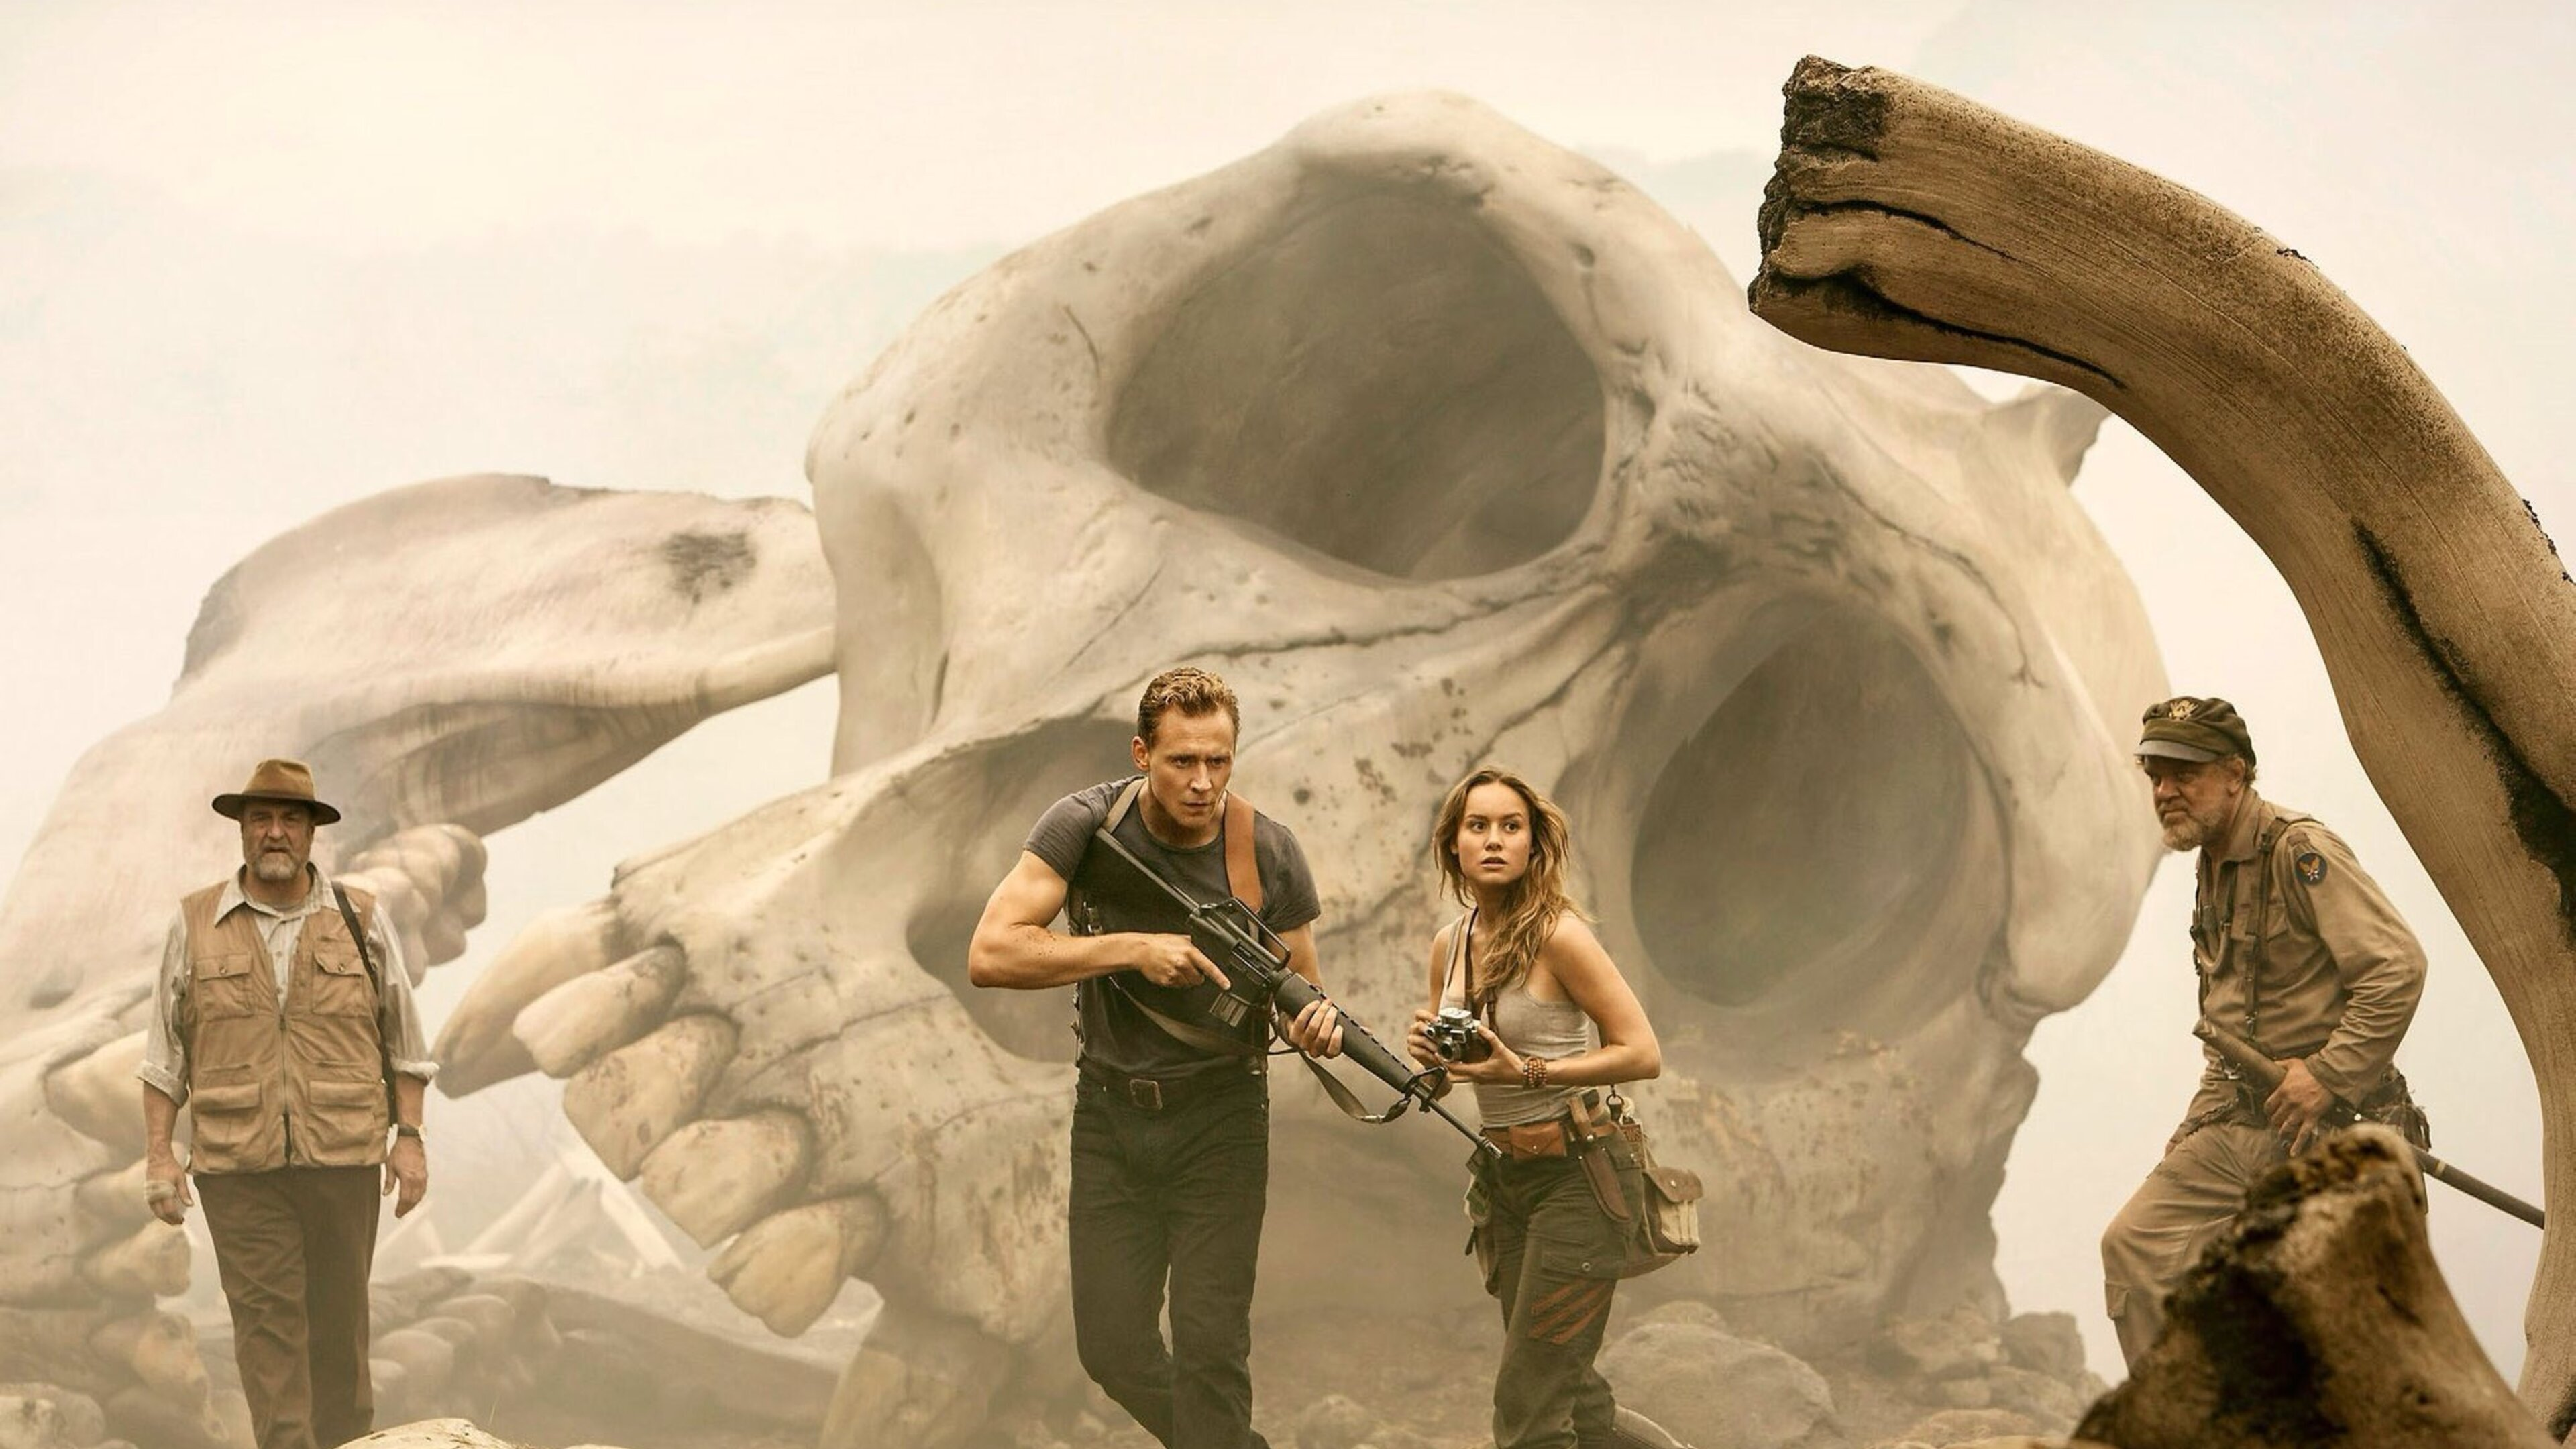 kong-skull-island-tom-hiddleston-pic.jpg